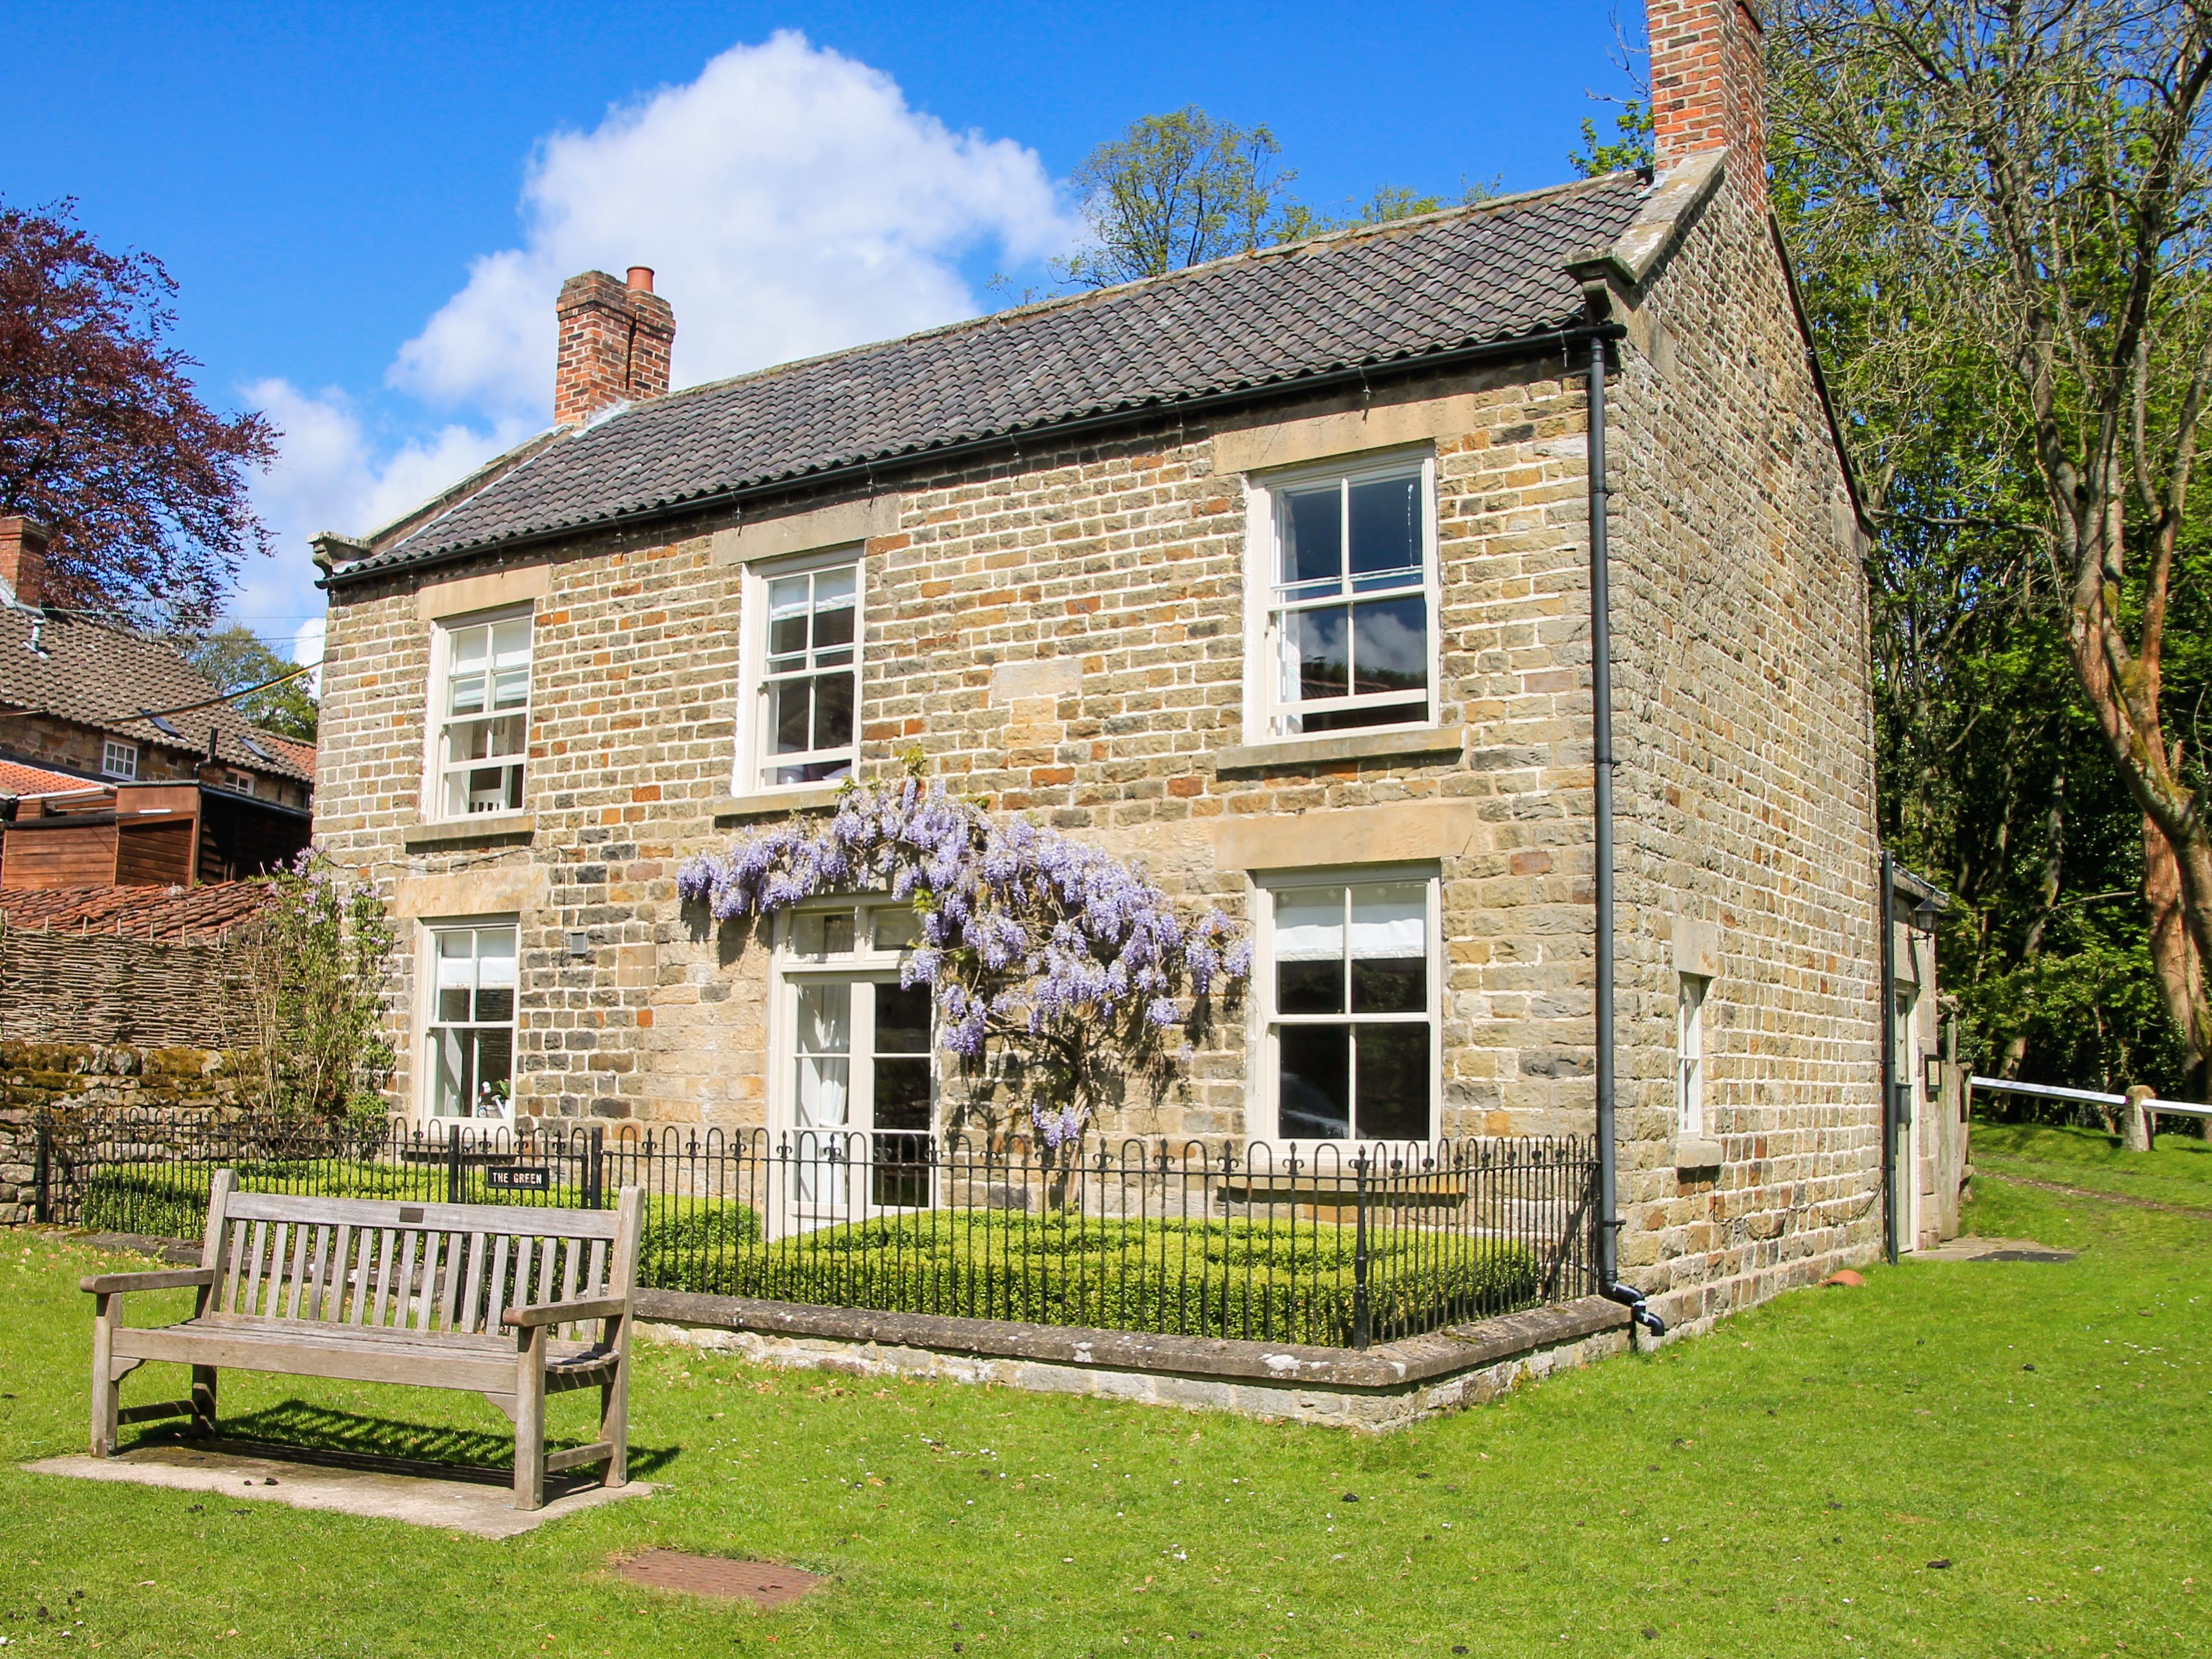 Photo of The Green ( Ref 947541 ) Lastingham Holiday cottage near Hutton le Hole - Accommodation in North York Moors National Park